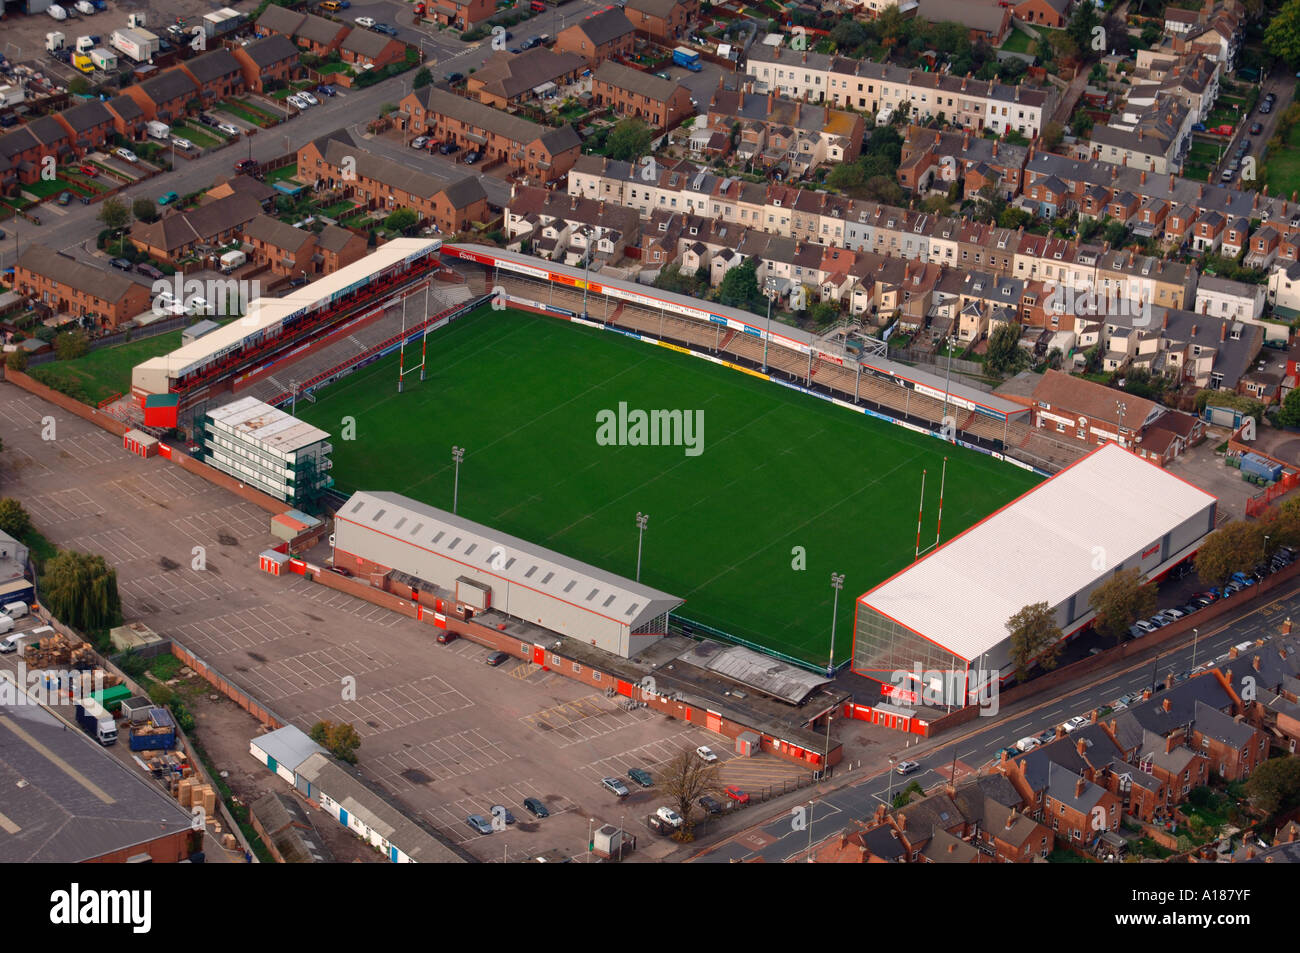 gloucester city centre with the kingsholm rugby ground stock photo  royalty free image  5814782